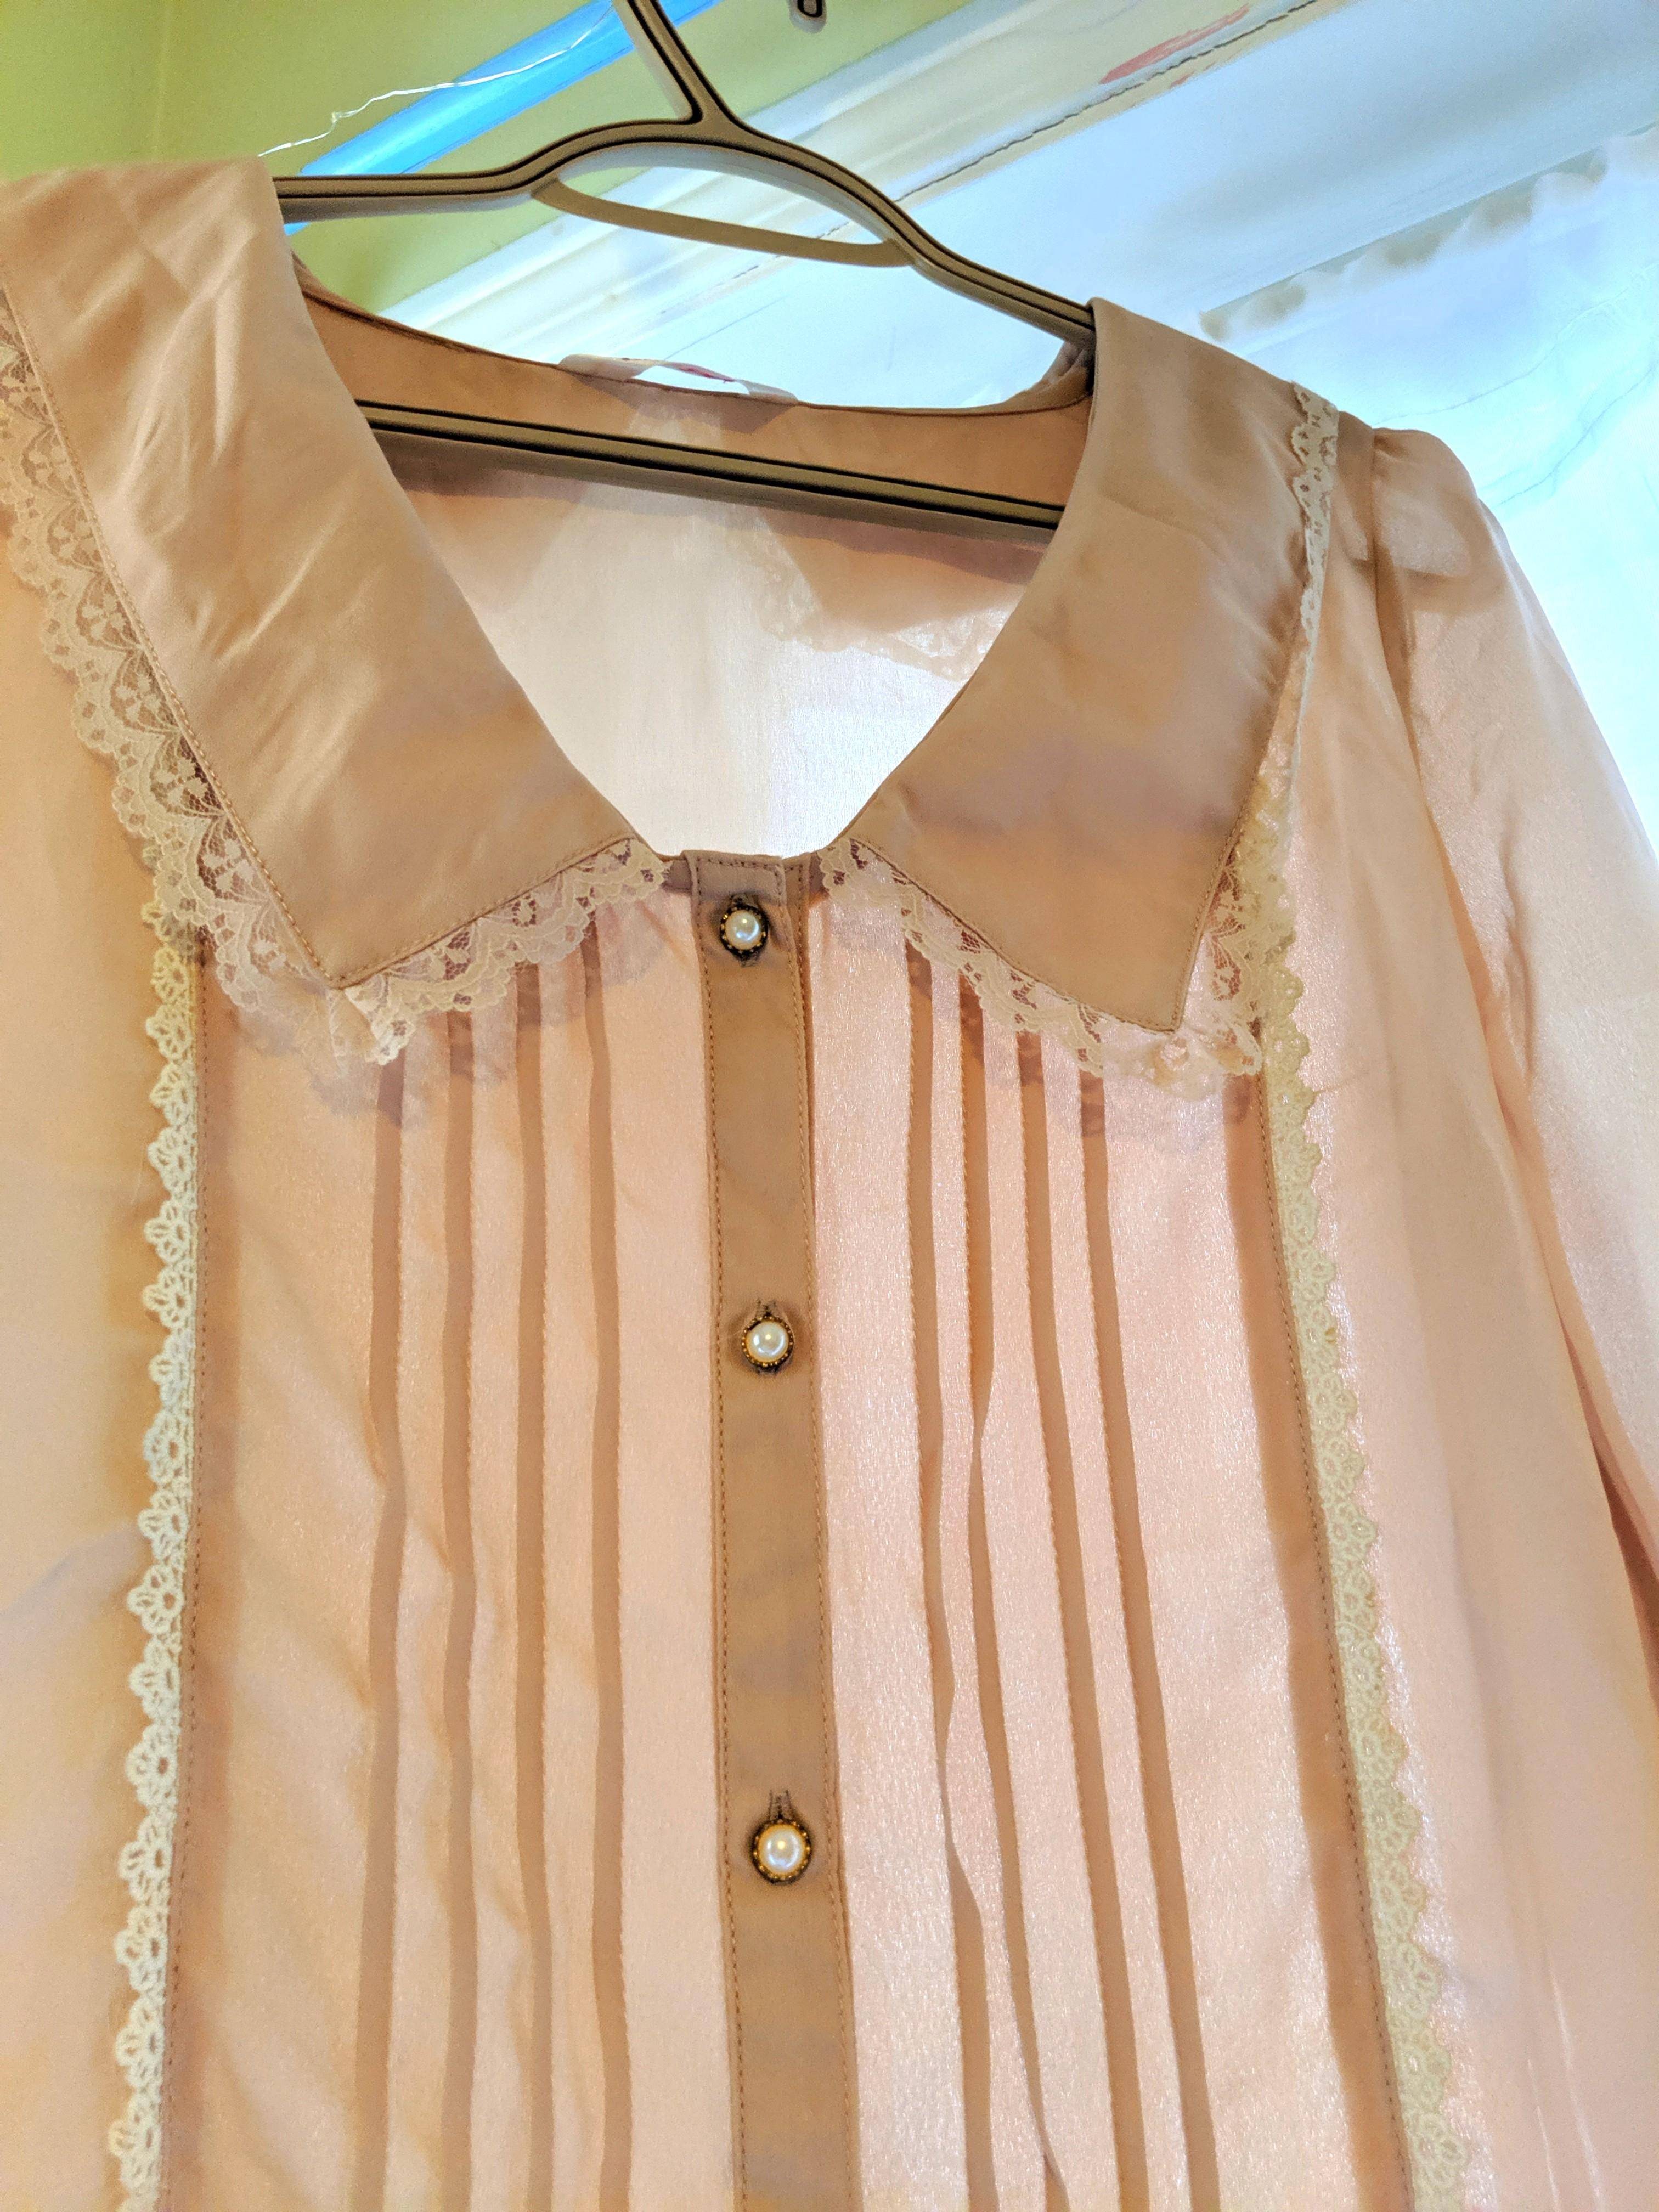 Japanese dusty rose chiffon button up collar top #swapCA